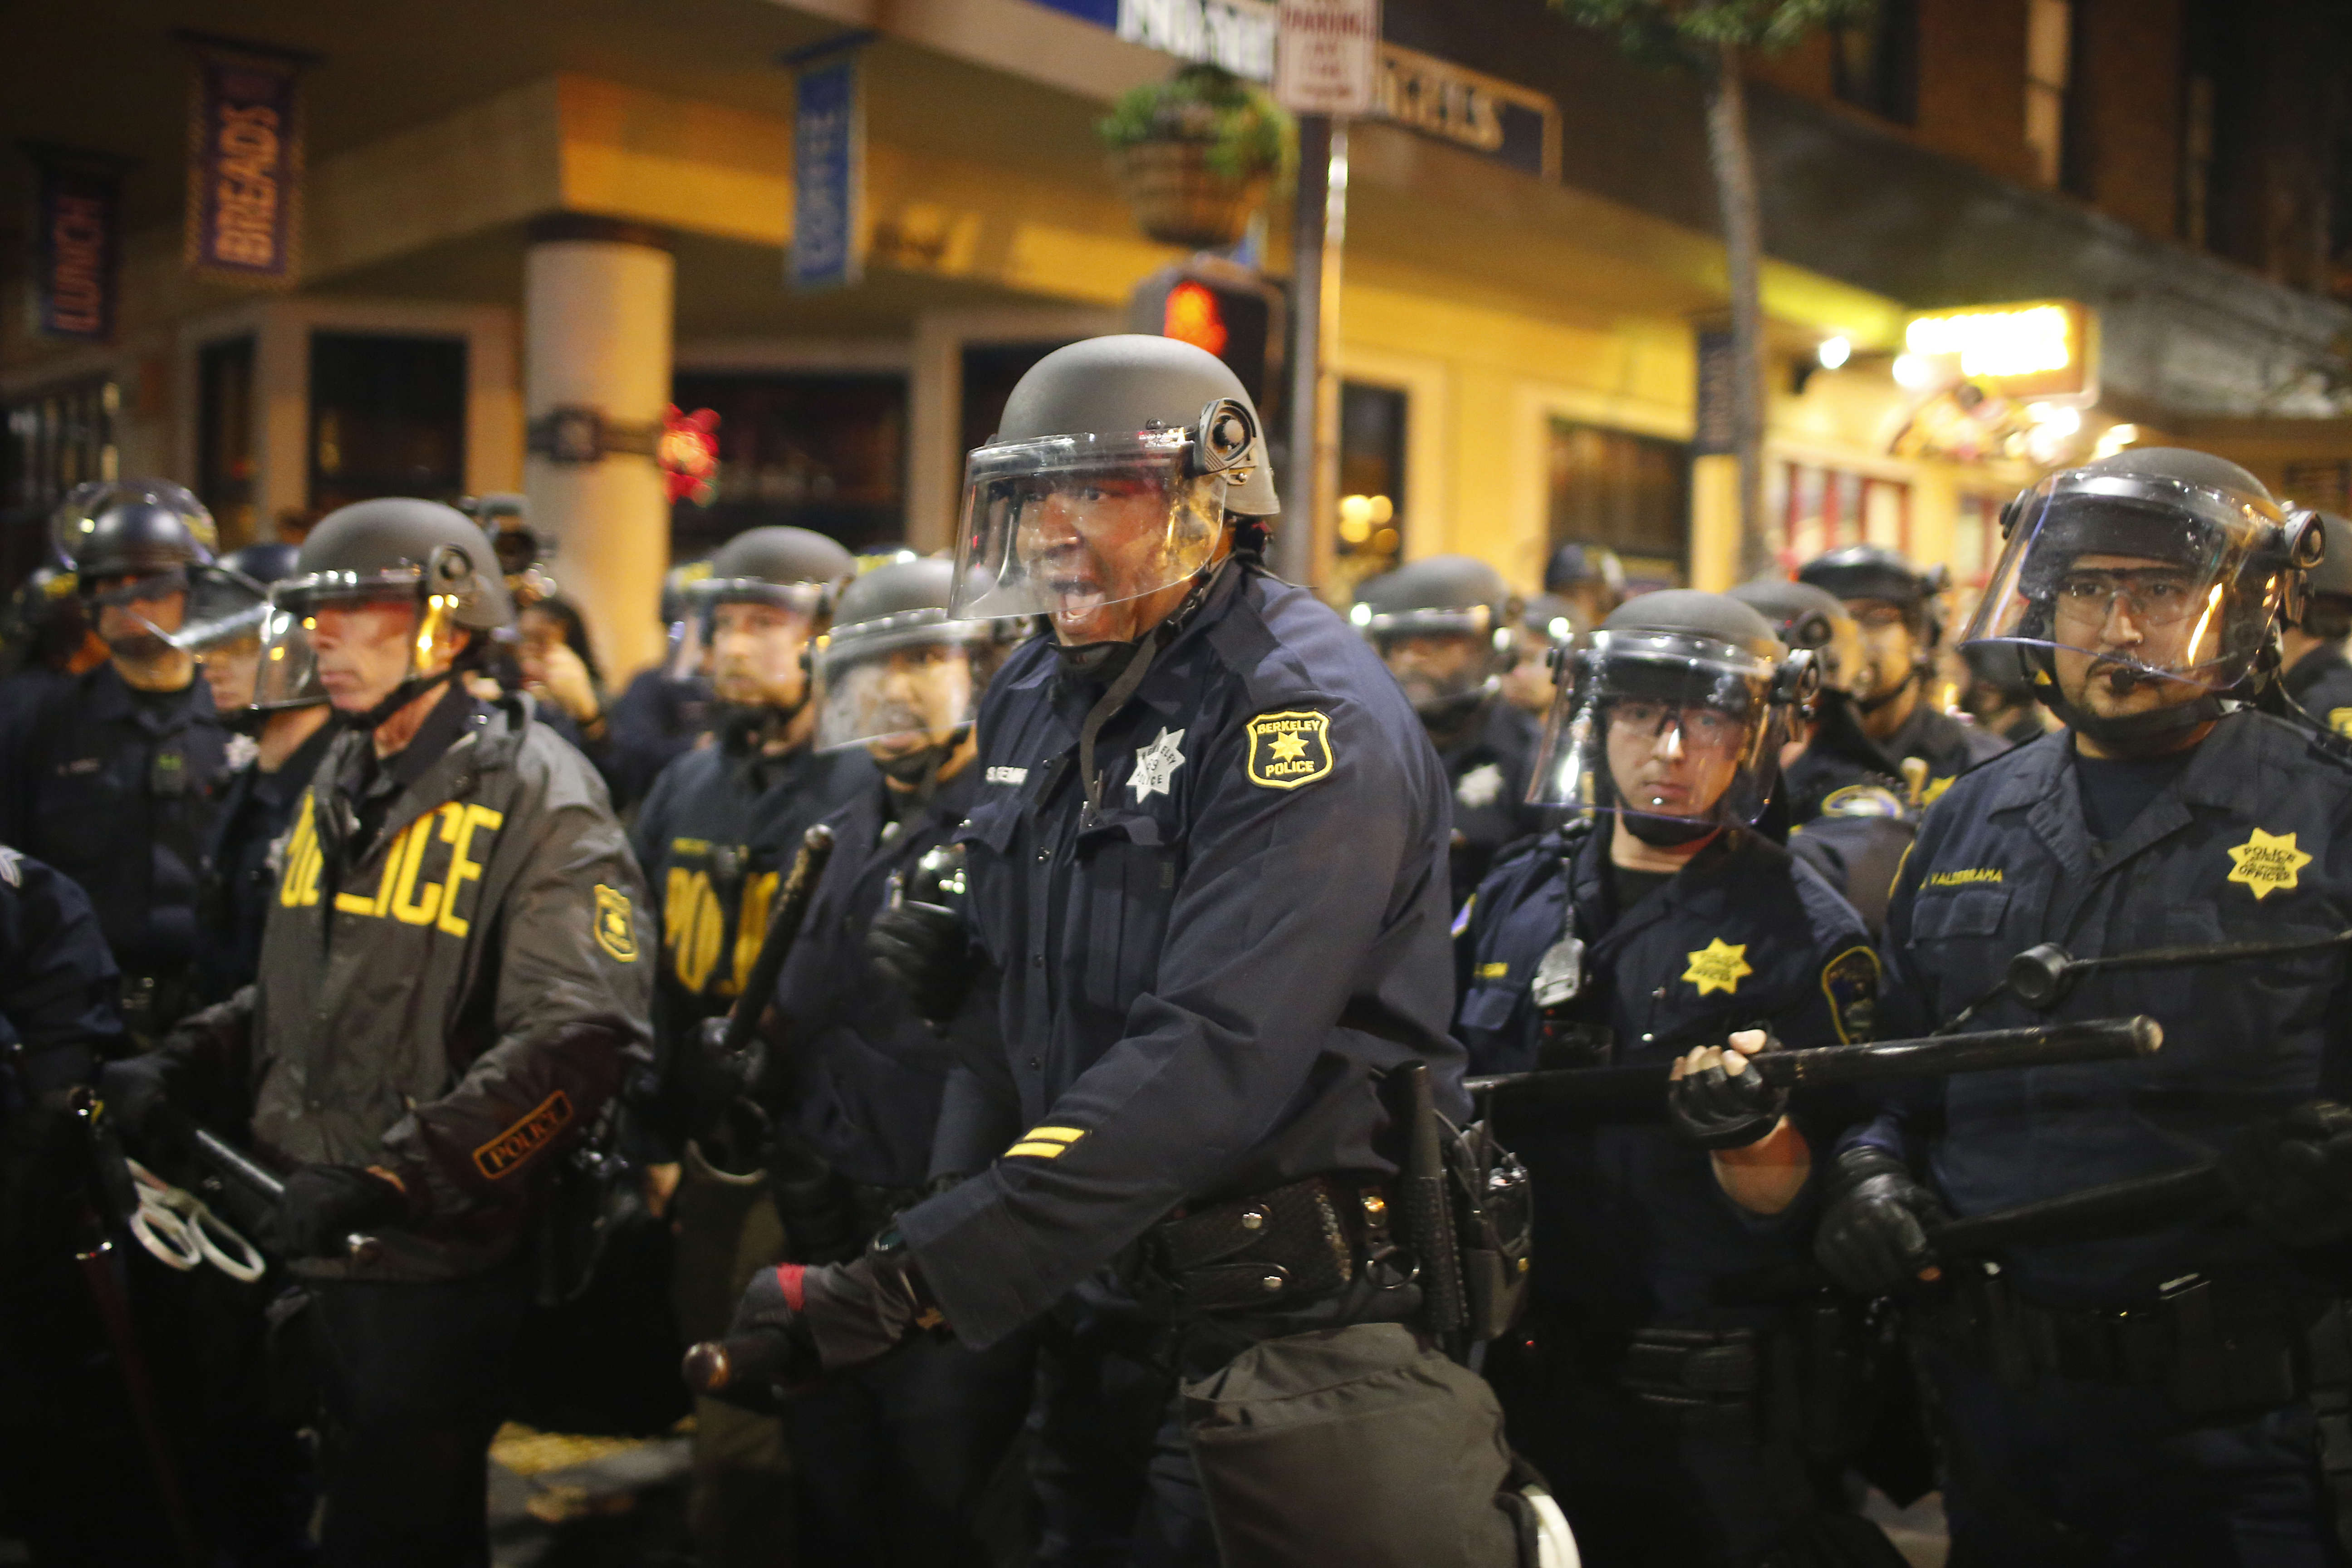 Demonstrations Over Recent Grand Jury Decisions In Police-Involved Deaths Continue